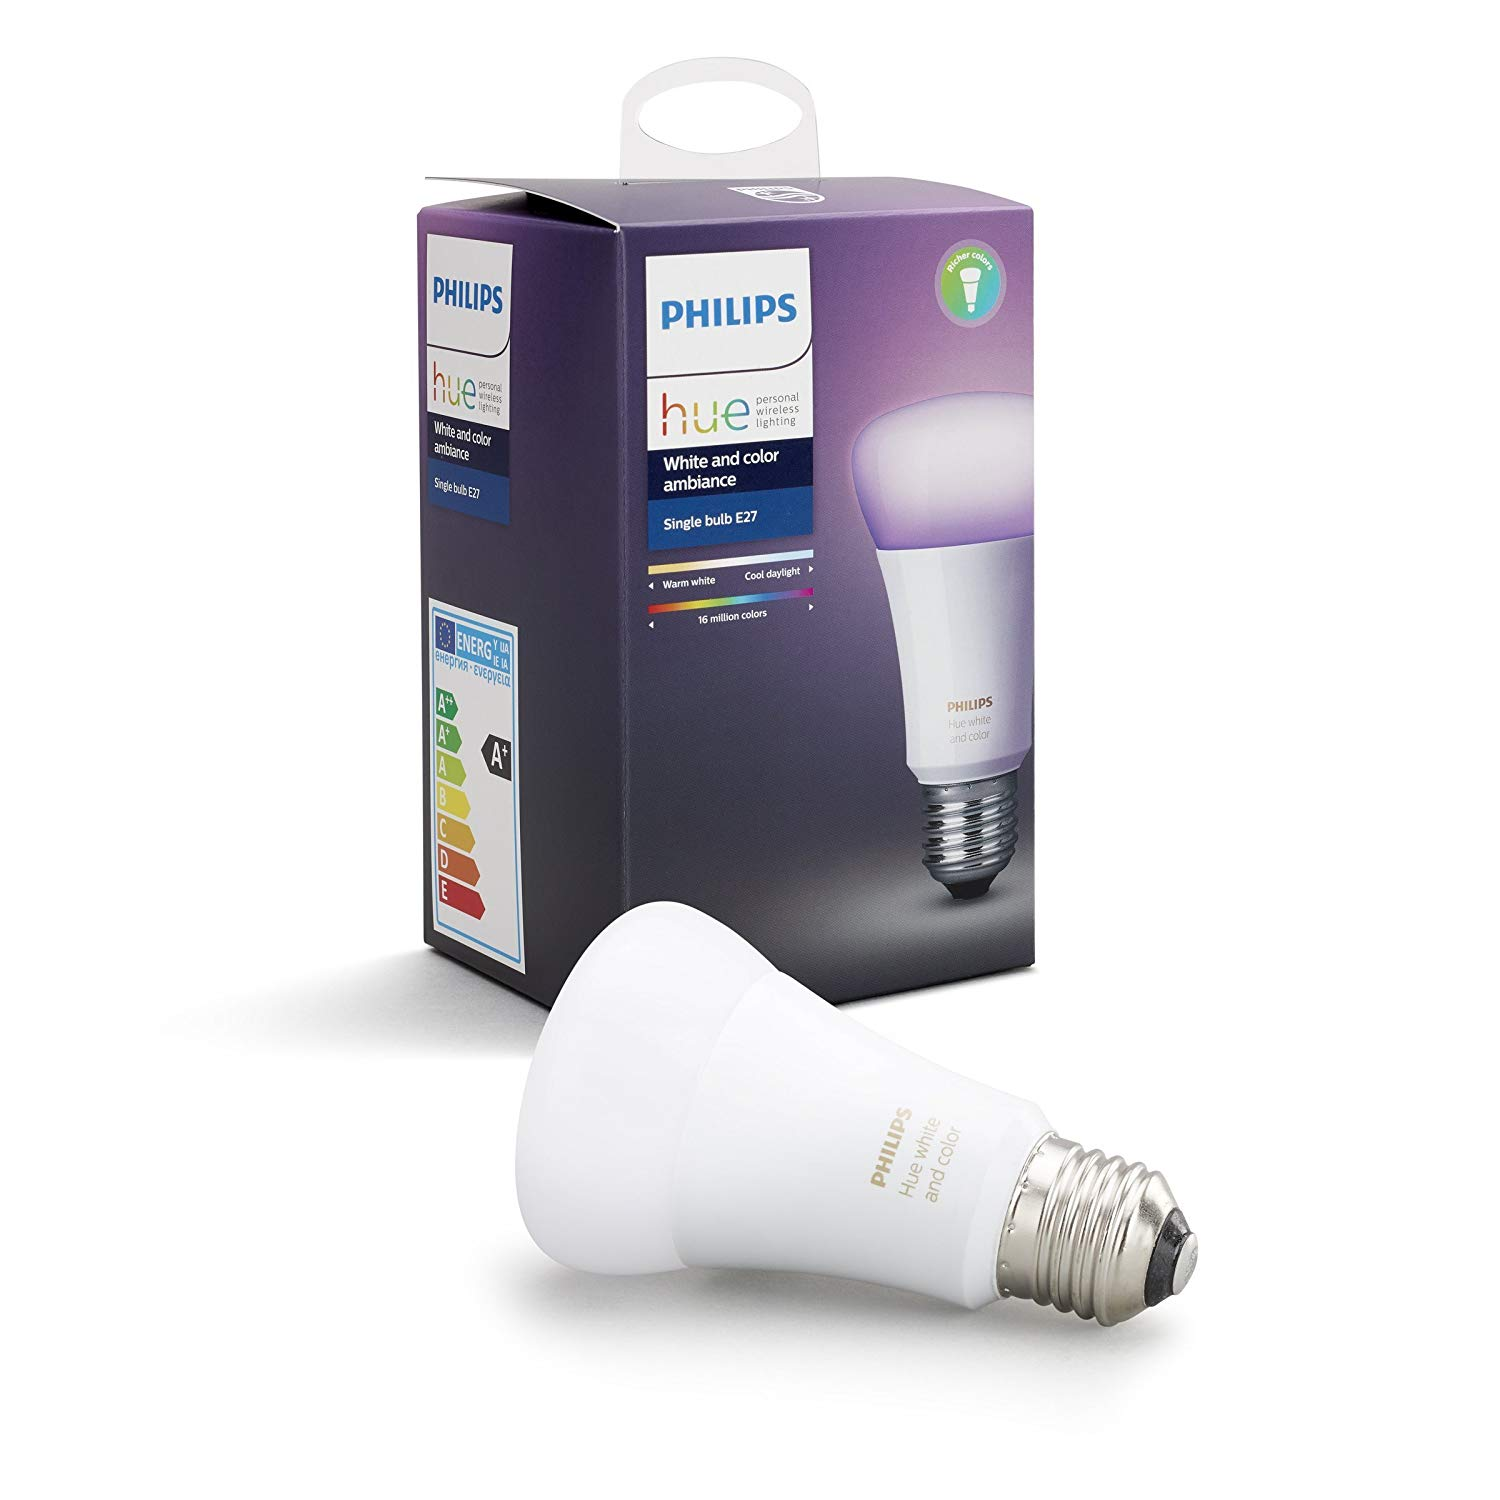 philips hue white color ambiance e27 bei amazon preispirat. Black Bedroom Furniture Sets. Home Design Ideas